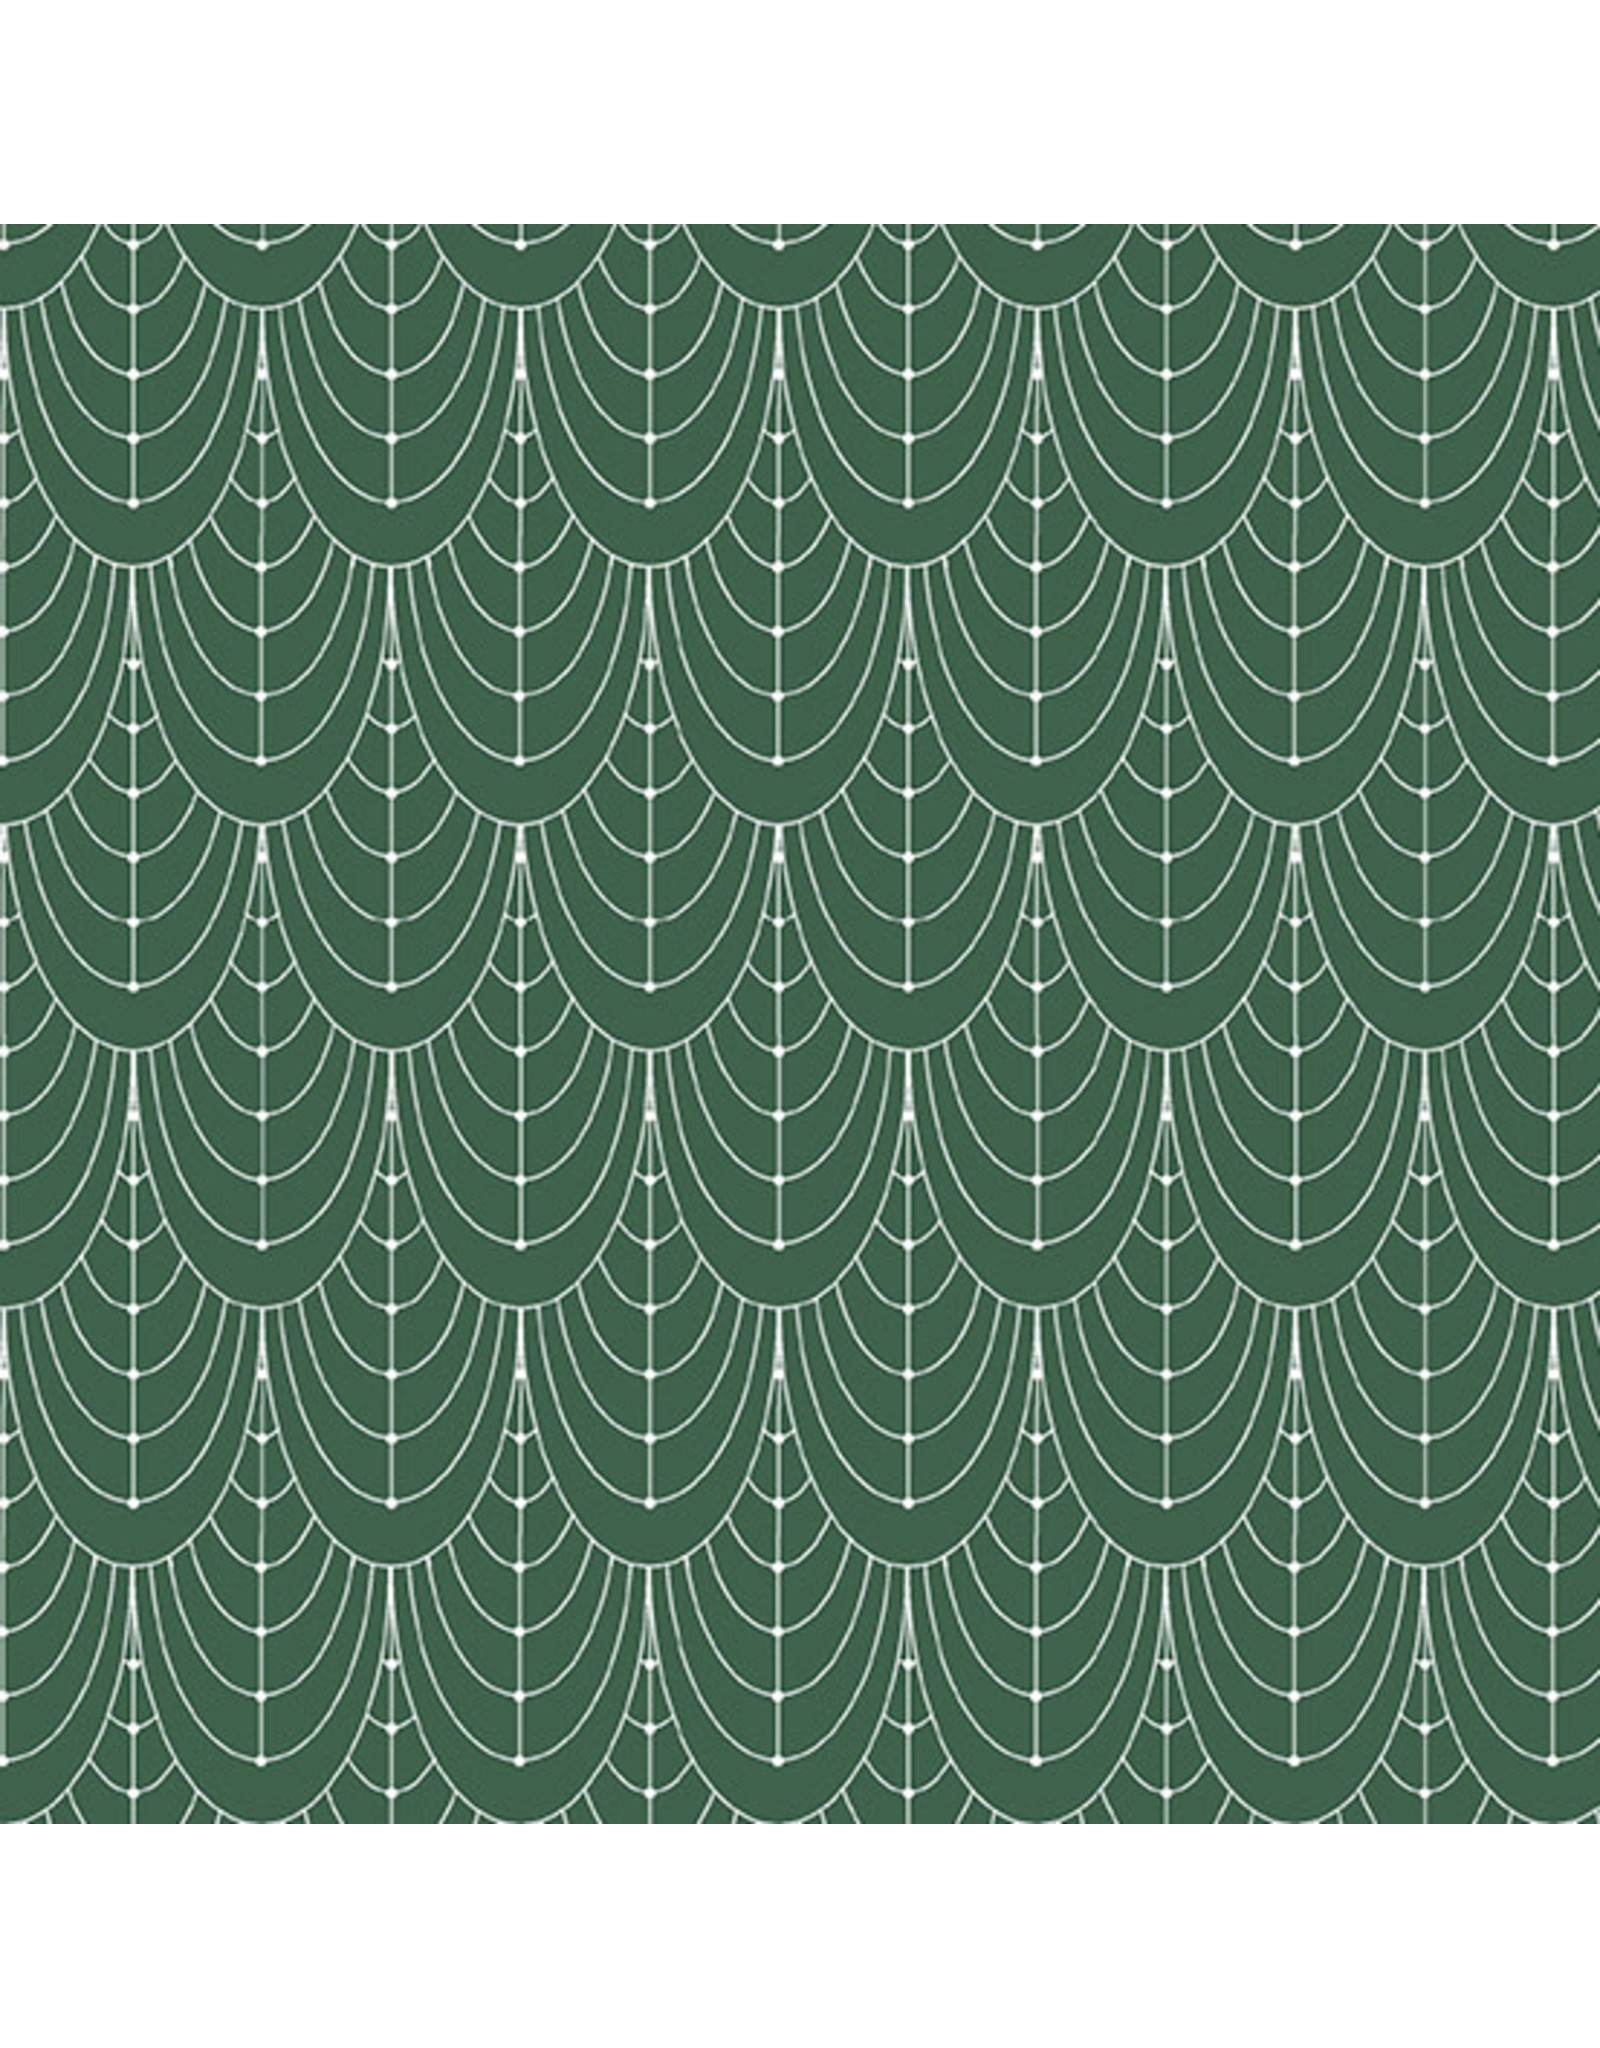 PD's Giucy Giuce Collection Century Prints, Deco Curtains in Hunter, Dinner Napkin